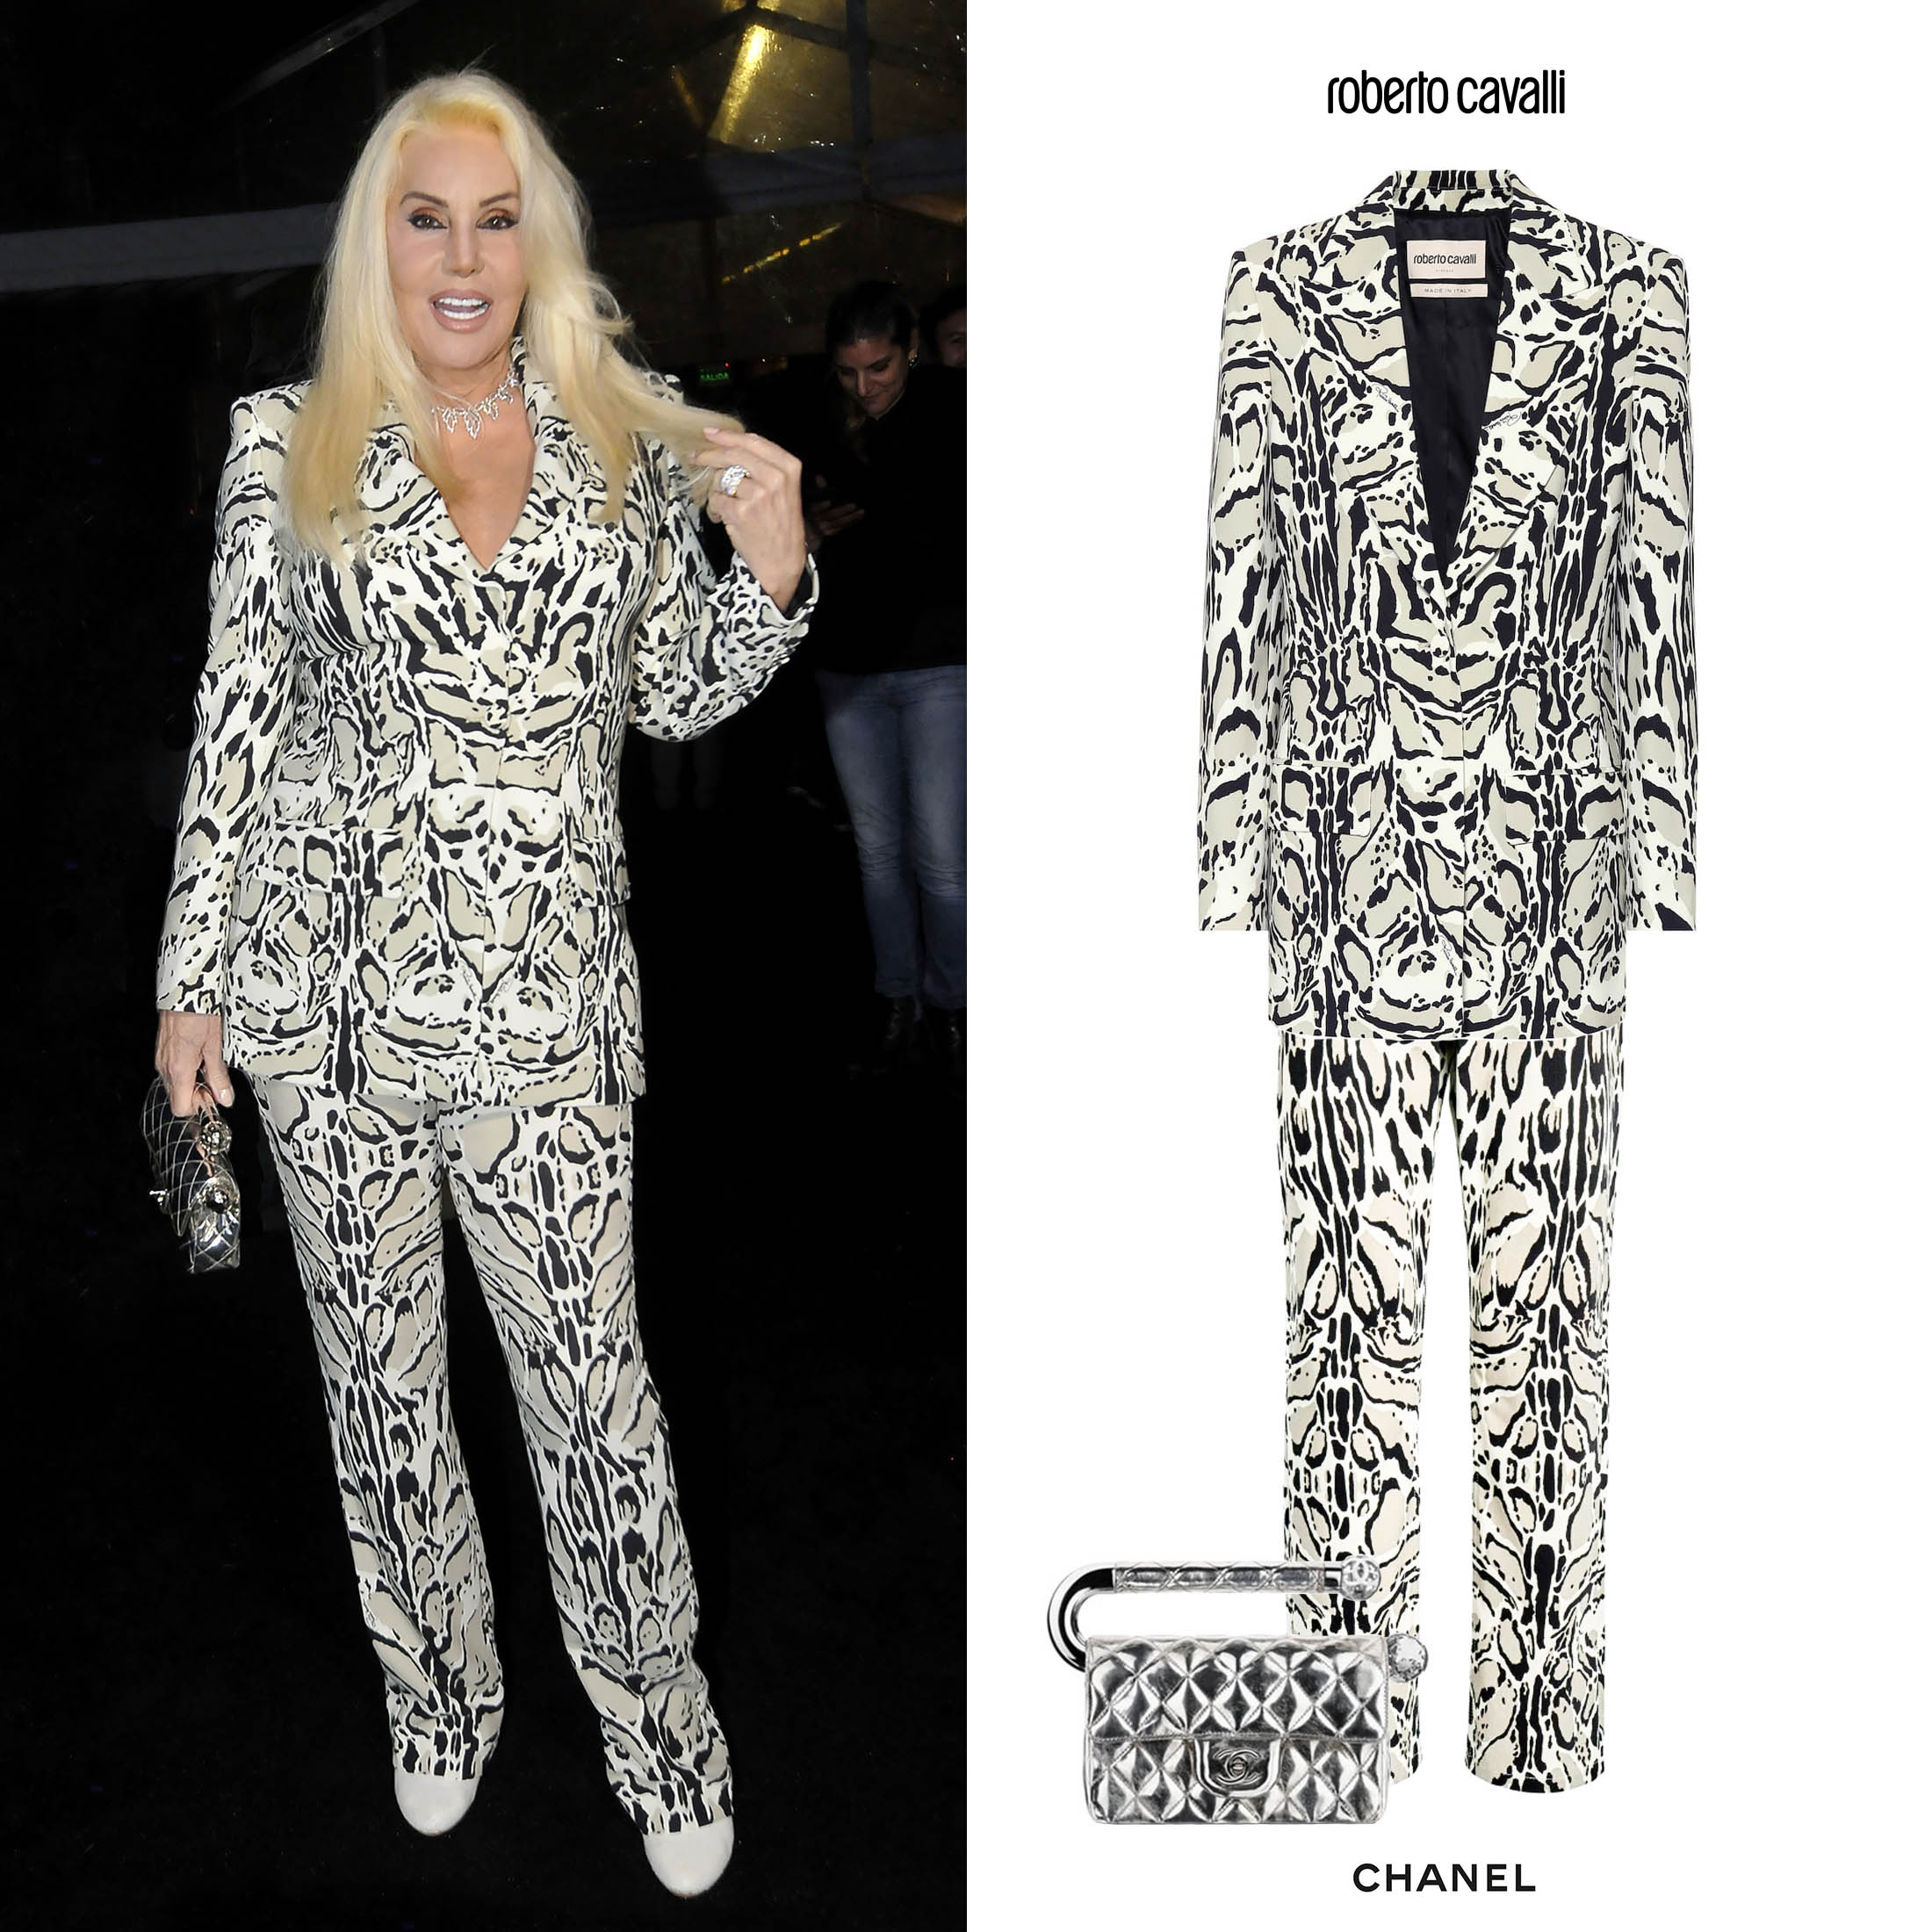 Susana_Gimenez_Samsung_Blazer_Pant_Pantalon_Roberto_Cavalli_Crepe_Estampado_ANimal_Print_Chanel_Flap_Mirror_Handle_Bag0.jpg